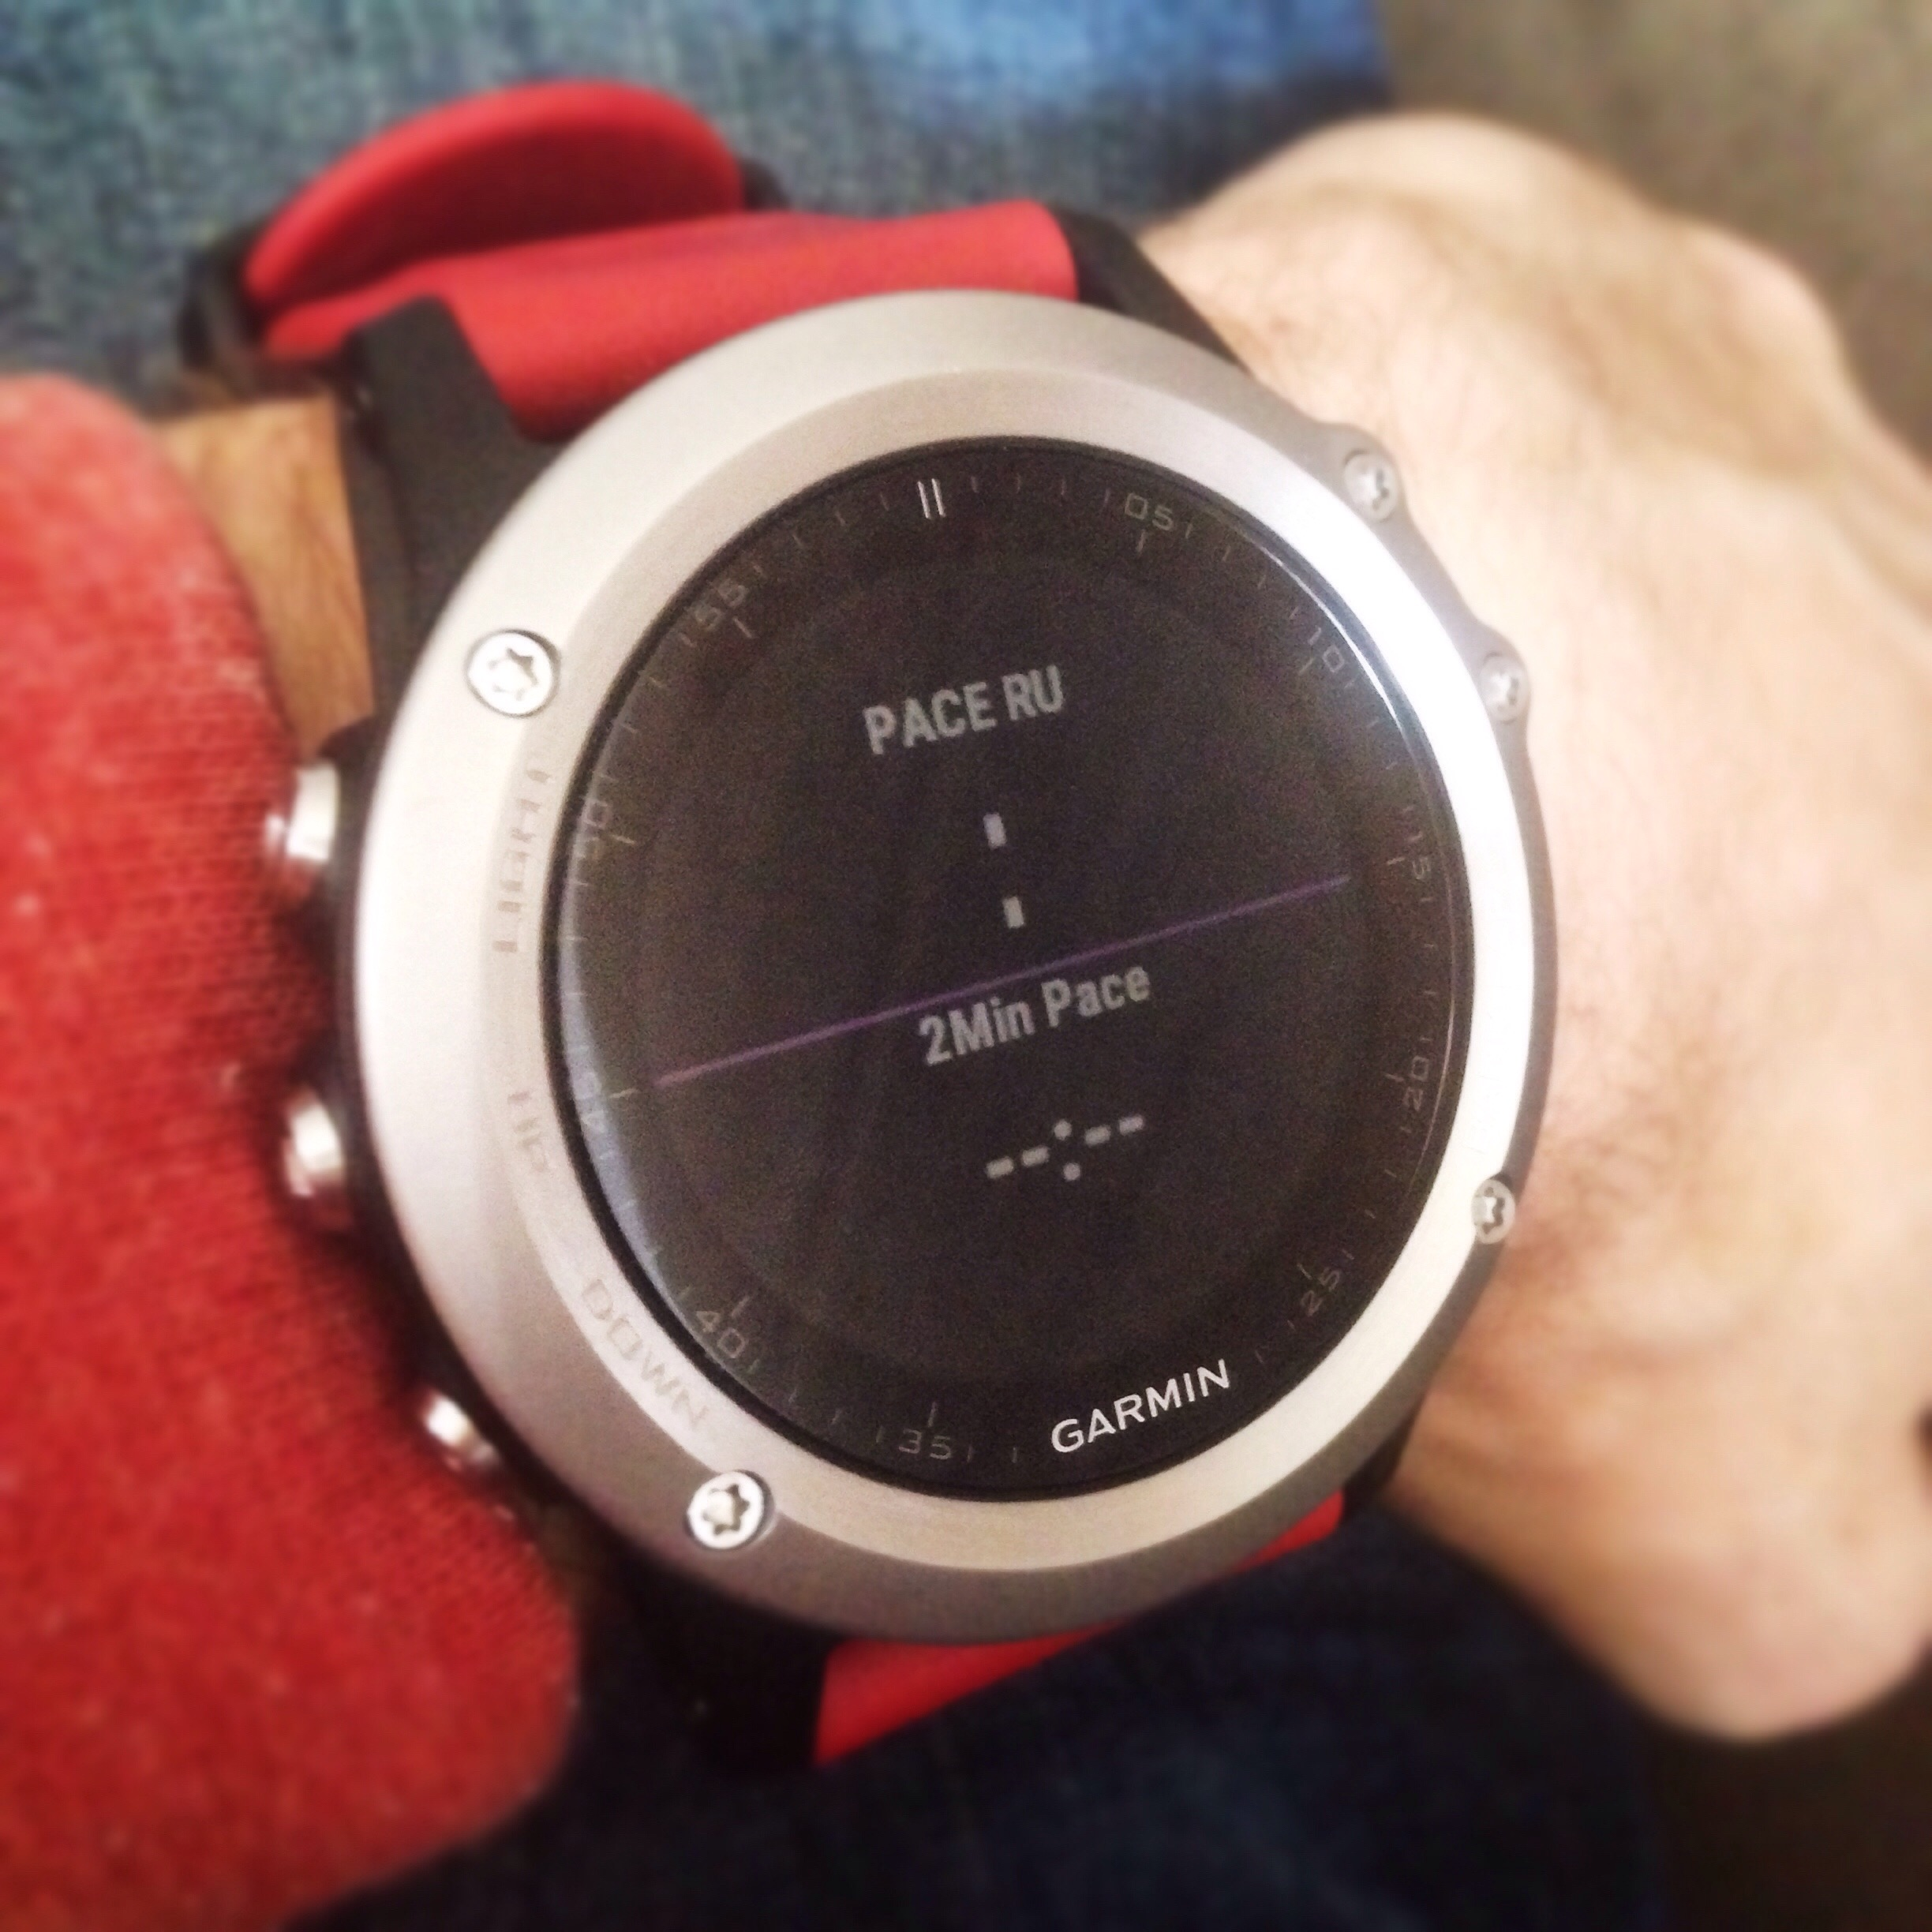 Garmin Fenix 3, Smartwatch, GPS, Laufuhr, Review, Test, IQ Connect